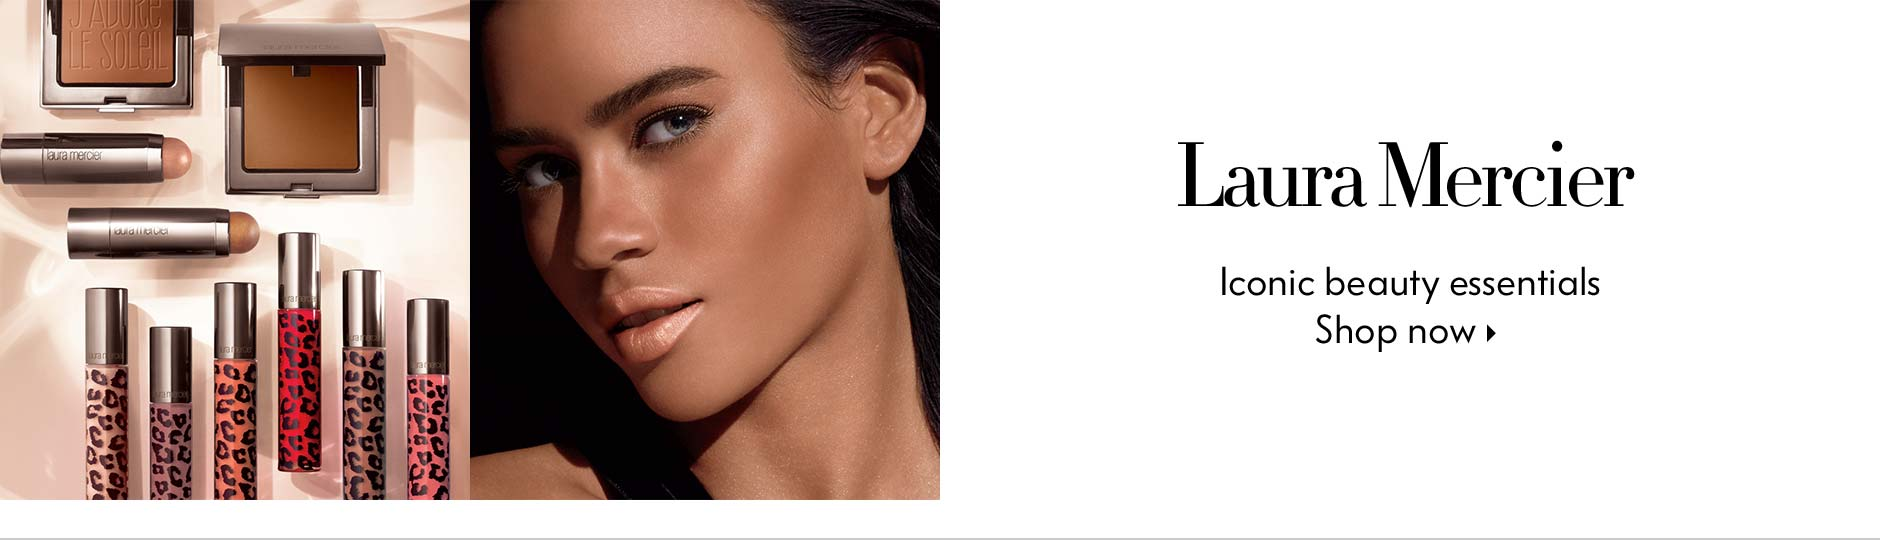 Laura Mercier - Iconic beauty essentials - shop now